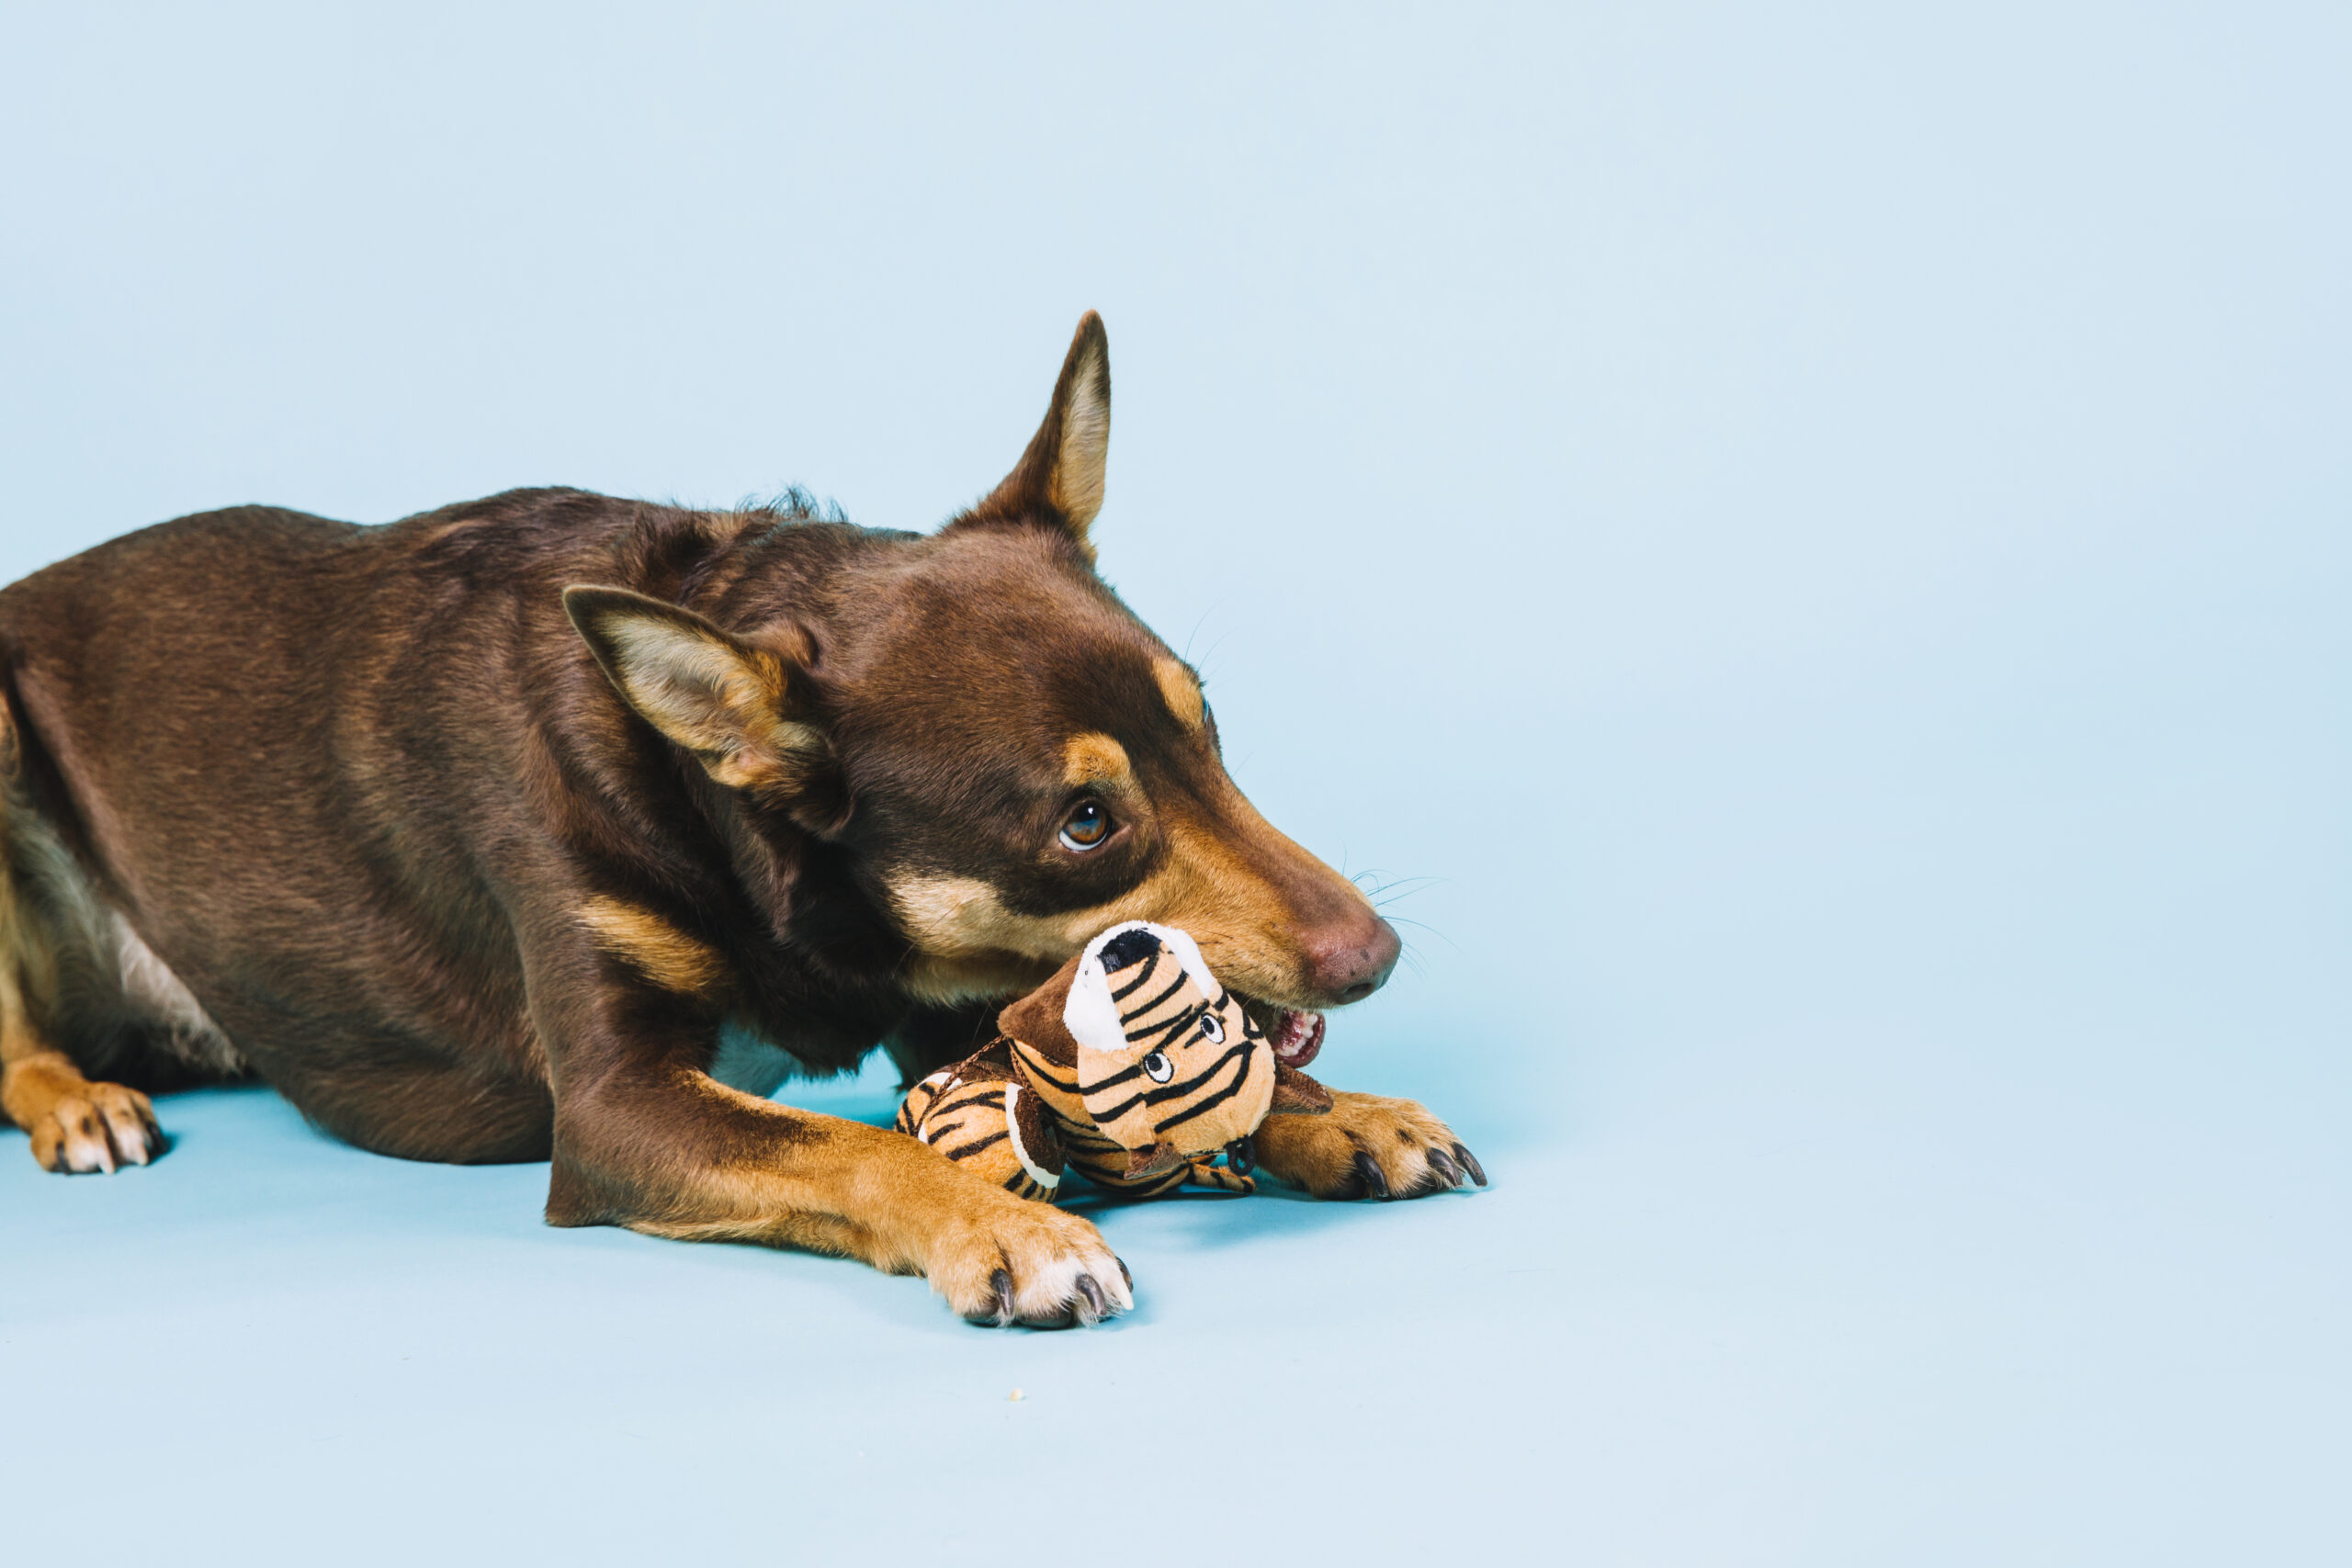 Top 12 Best Dog Toys Of 2021 That Are Durable & Fun To Play